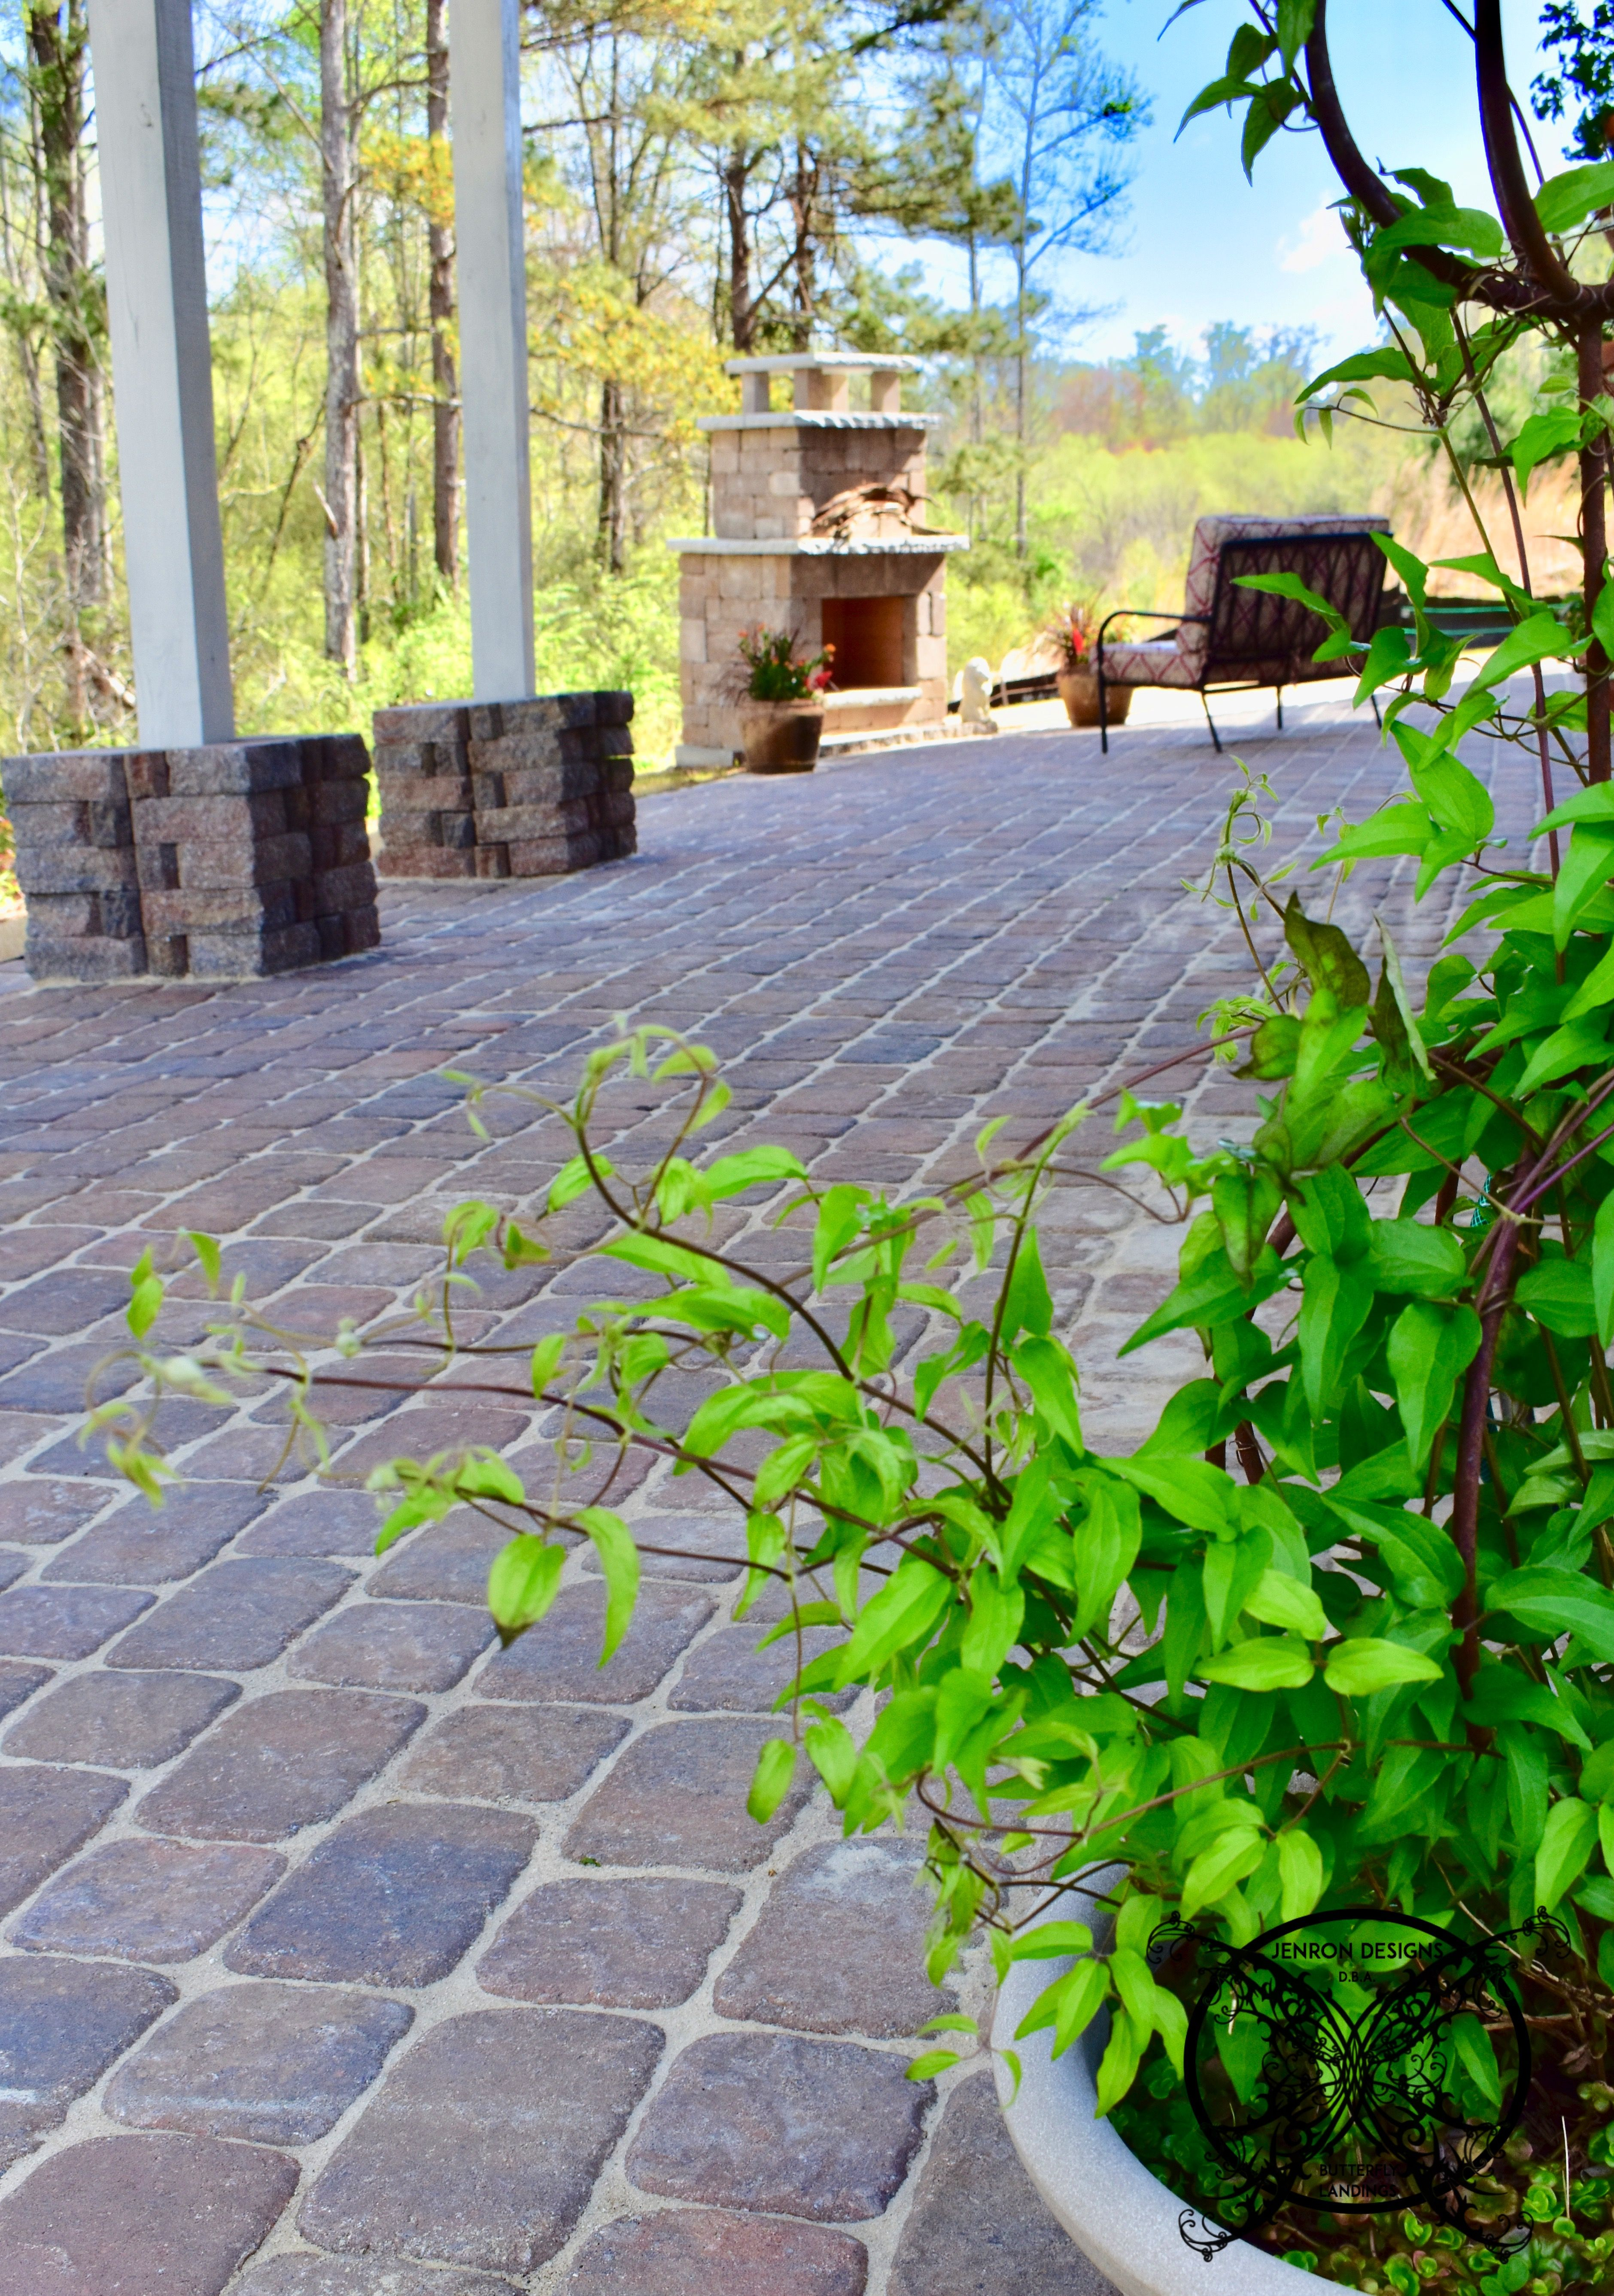 diy paver patio project in 2020 patio pavers design diy on magnificent garden walkways ideas for unique outdoor setting id=18291